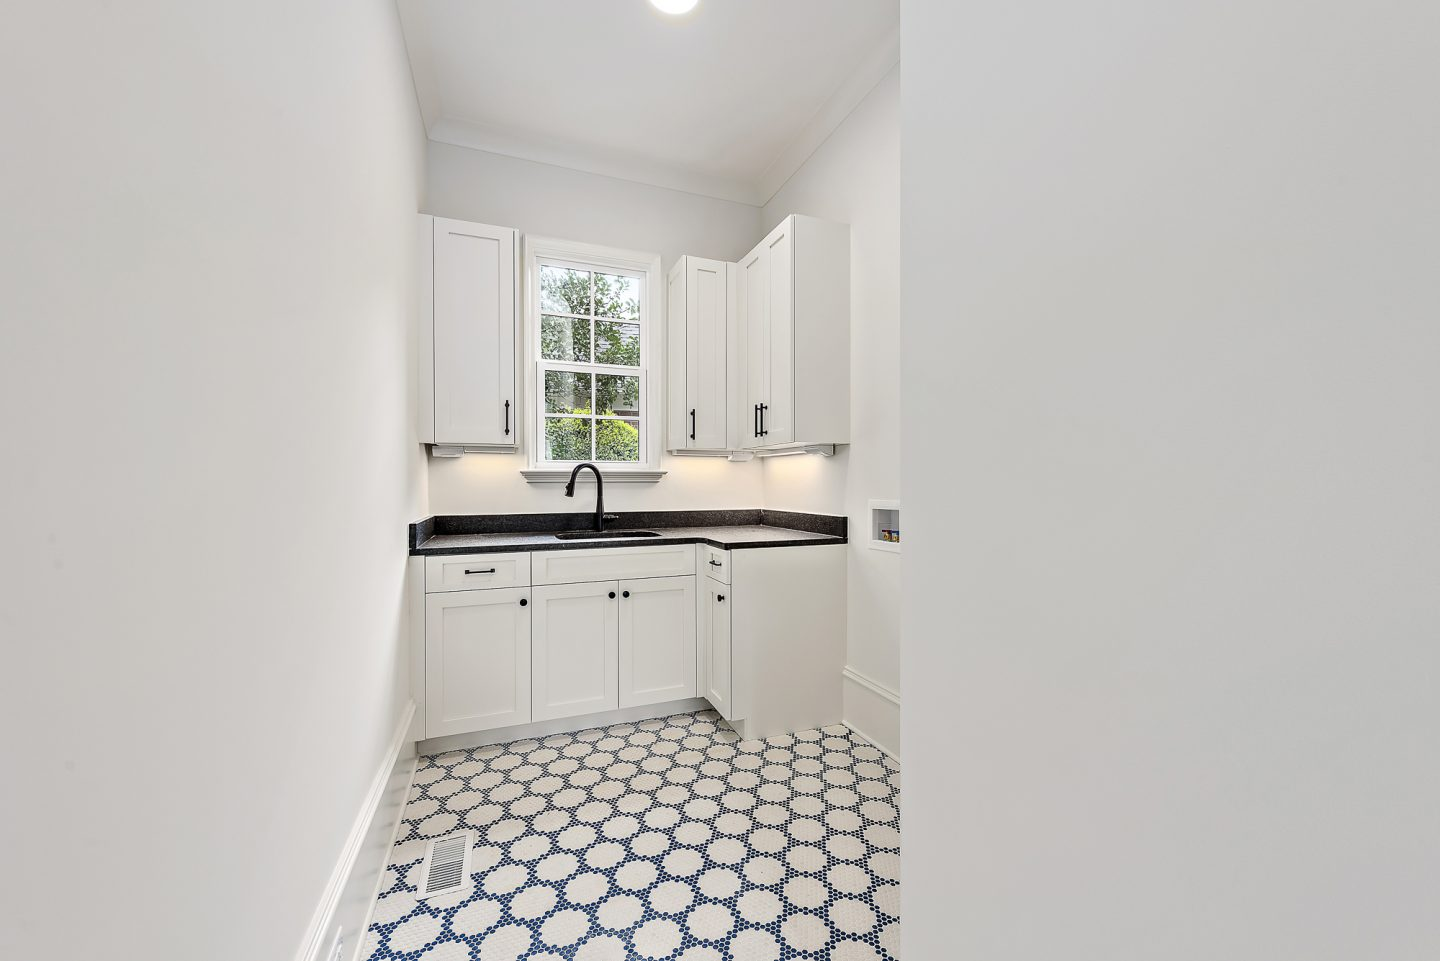 laundry room - pike properties - Charlotte, nc